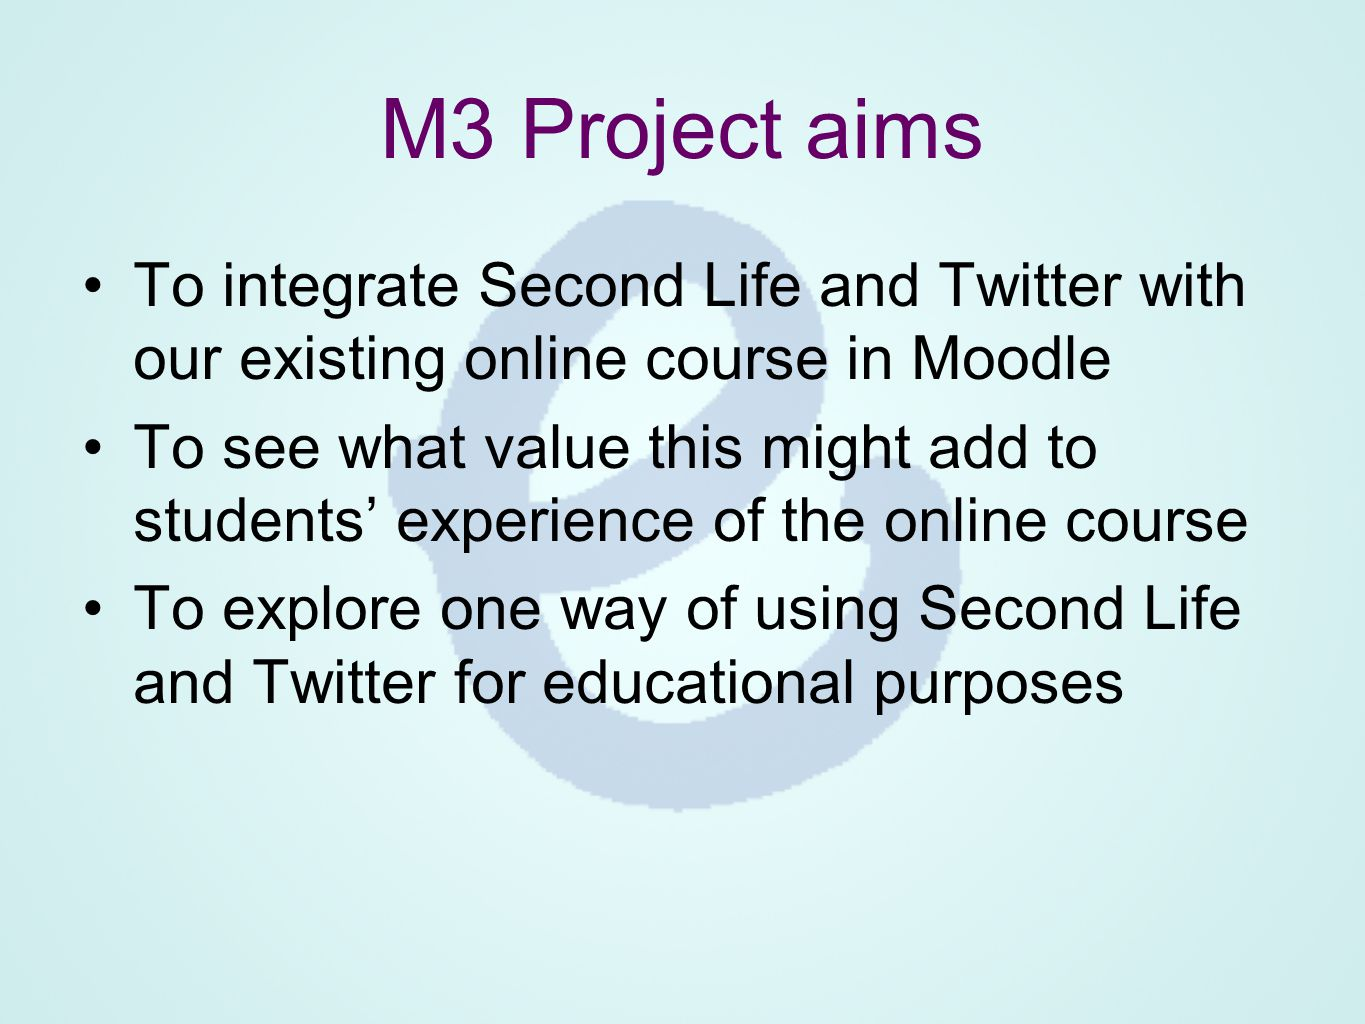 M3 Project aims To integrate Second Life and Twitter with our existing online course in Moodle To see what value this might add to students' experience of the online course To explore one way of using Second Life and Twitter for educational purposes